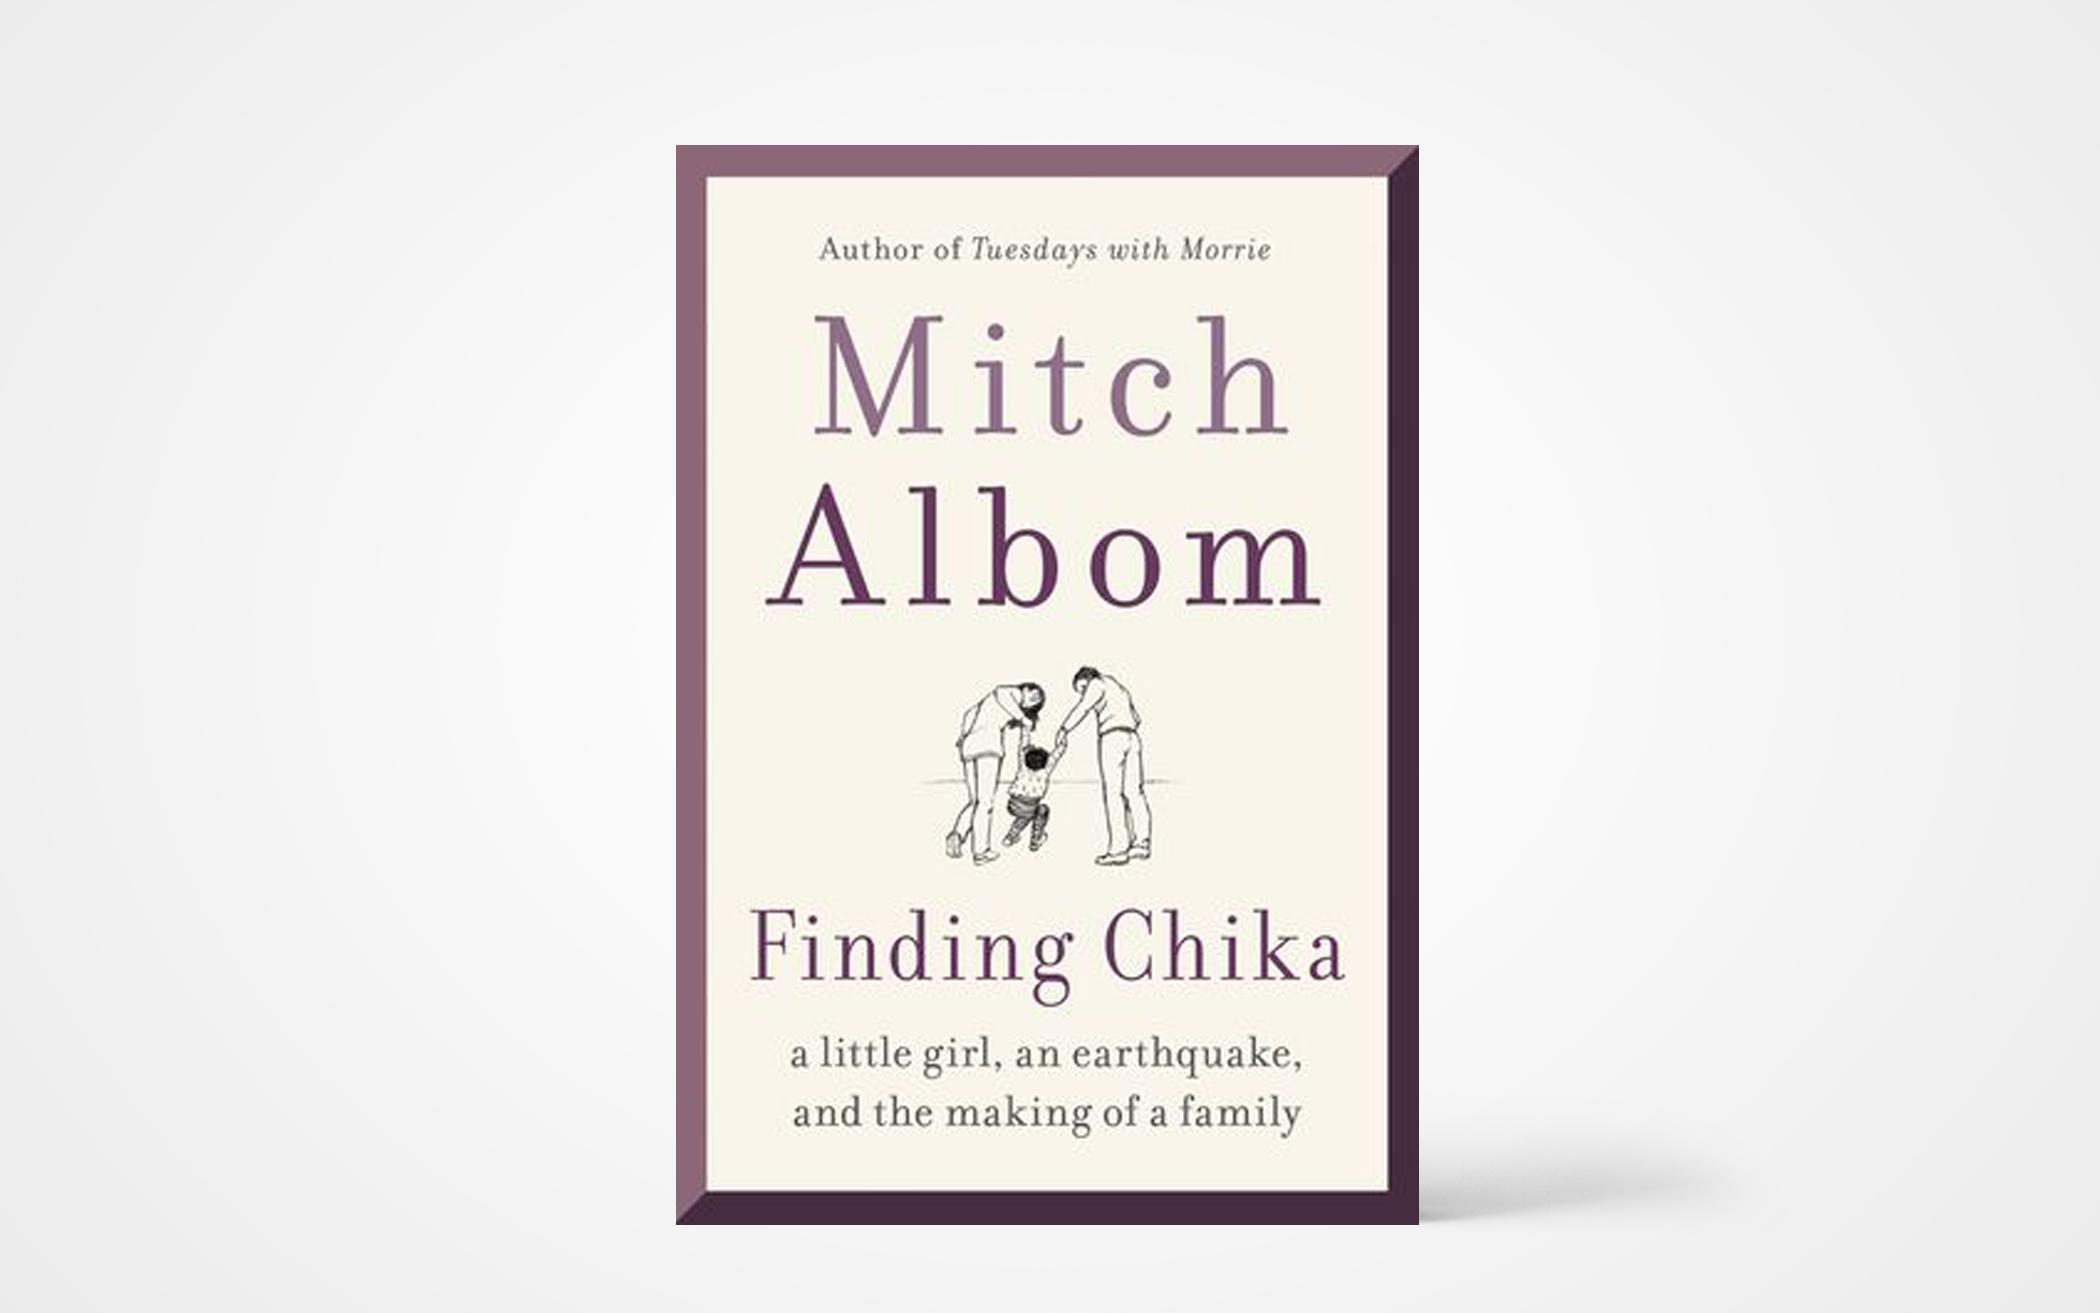 Finding Chika: A Little Girl, an Earthquake and the Making of Family